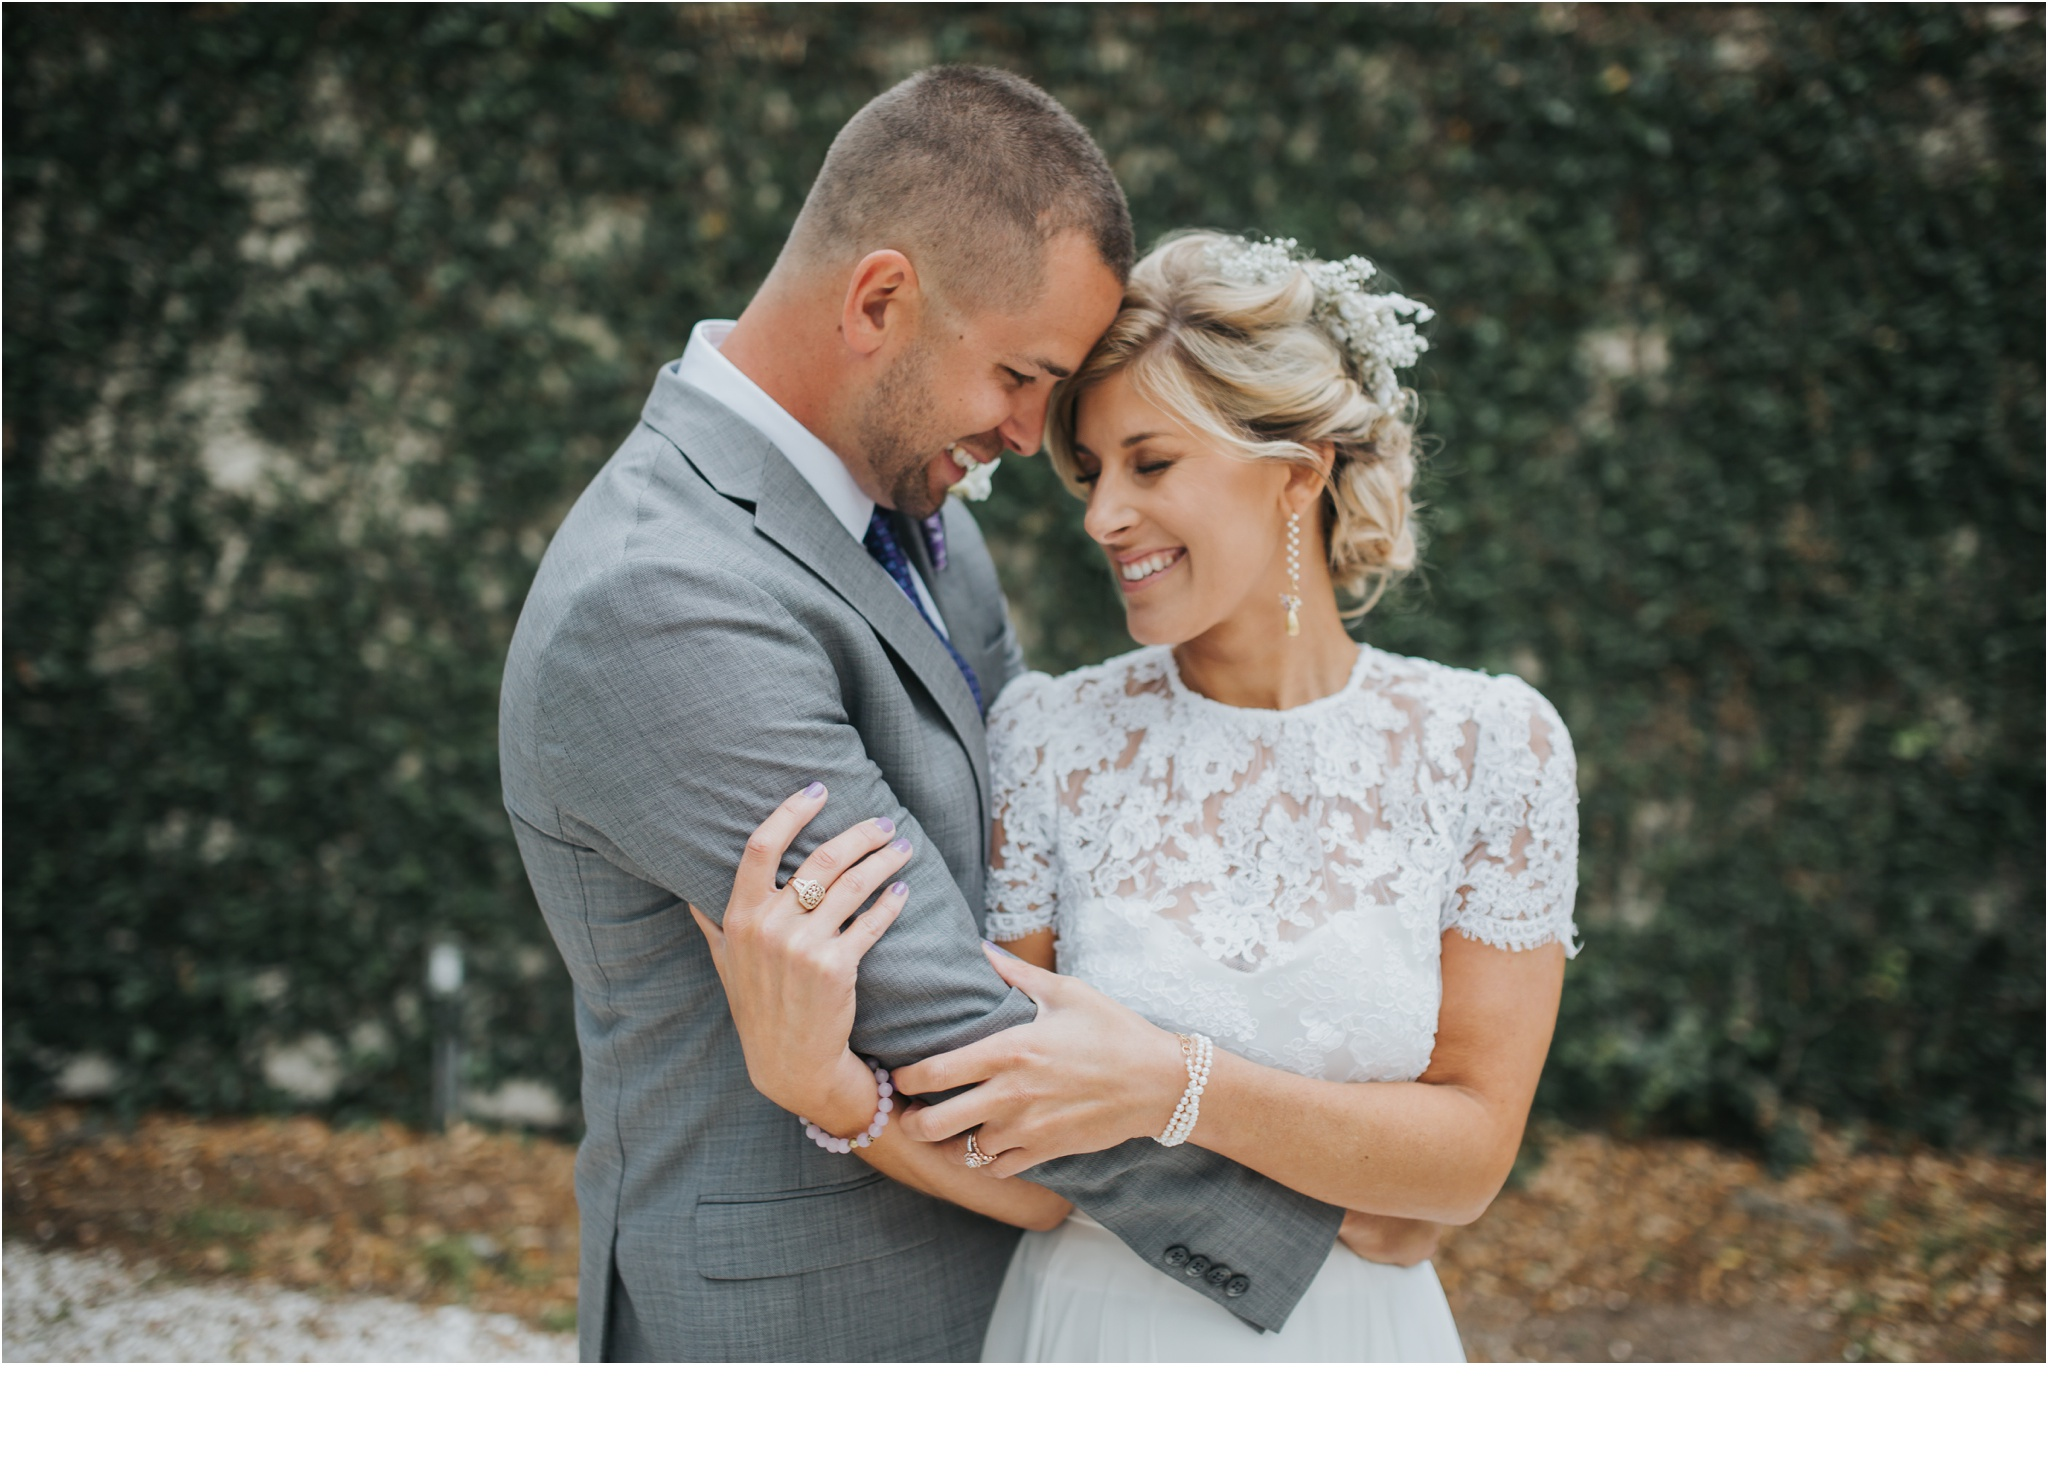 Rainey_Gregg_Photography_St._Simons_Island_Georgia_California_Wedding_Portrait_Photography_1528.jpg